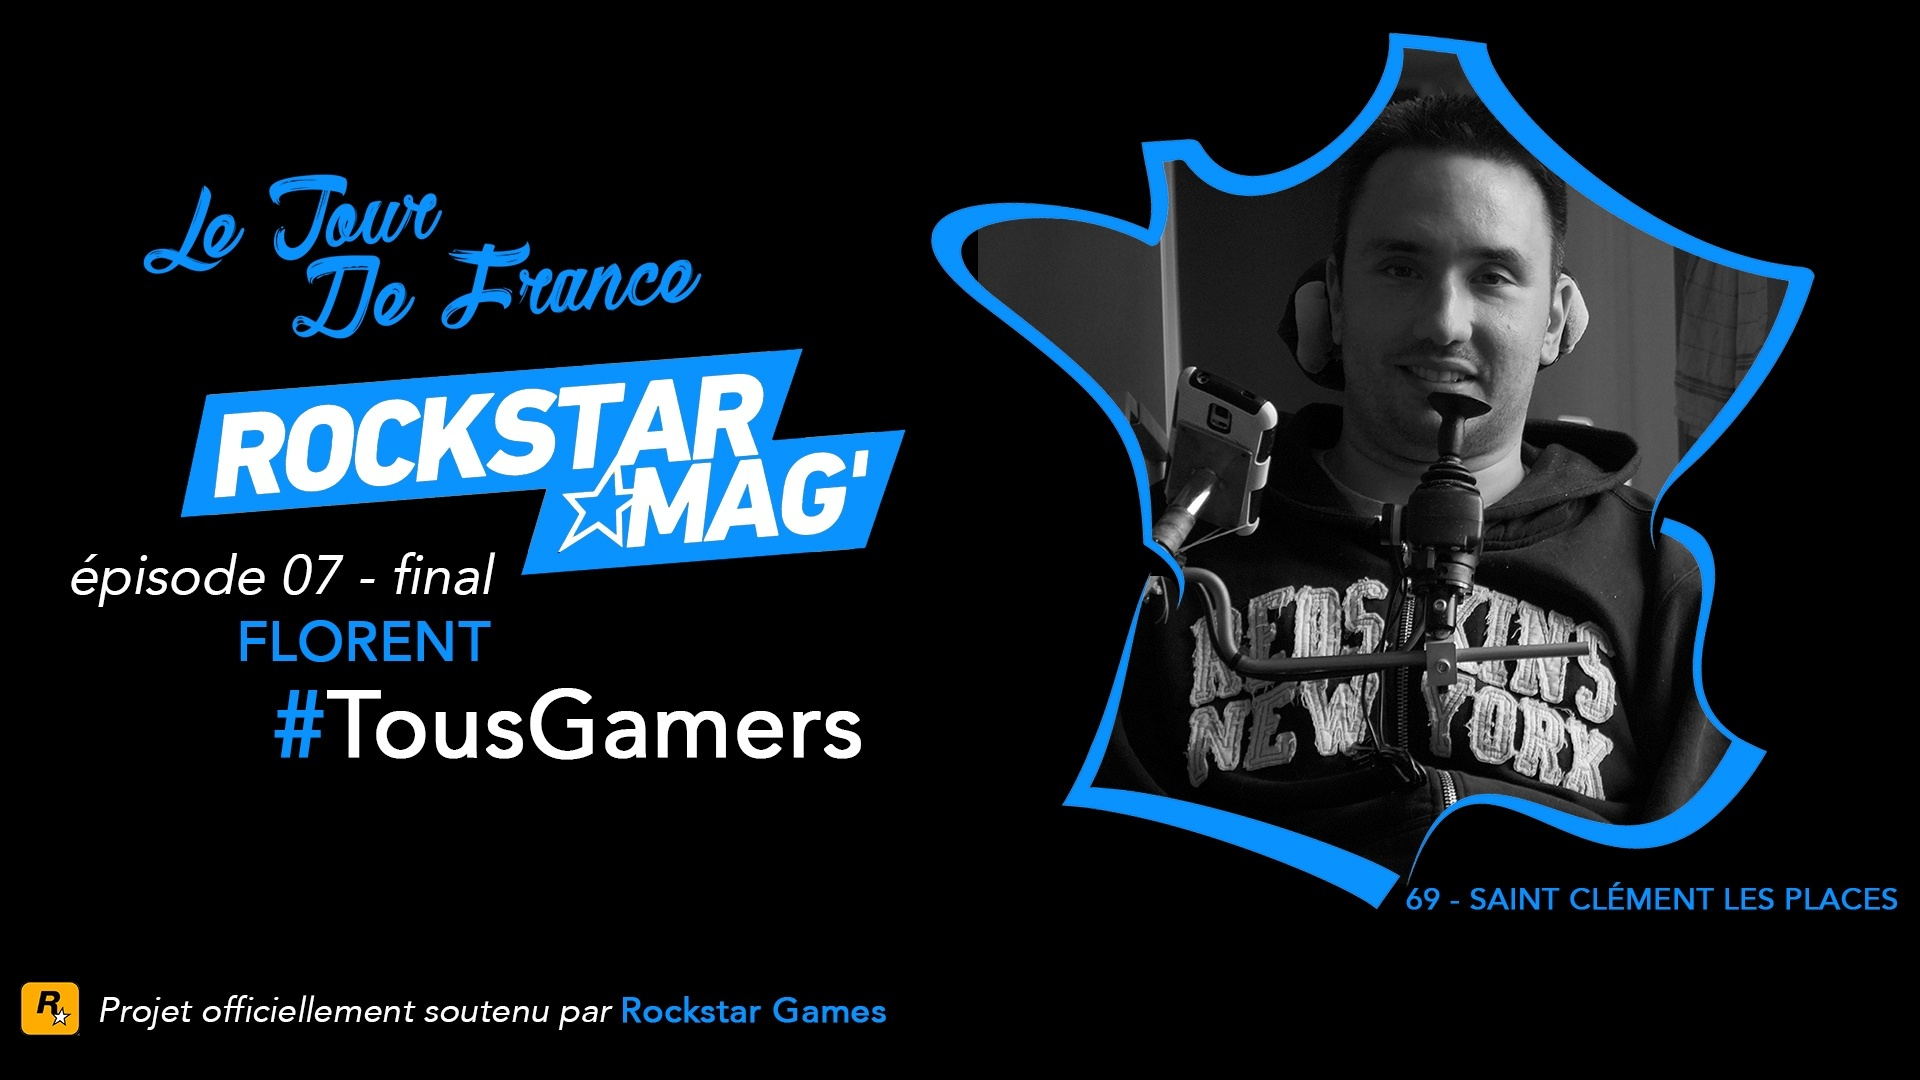 Tour de France TousGamers Rockstar Mag Episode 07 - Florent